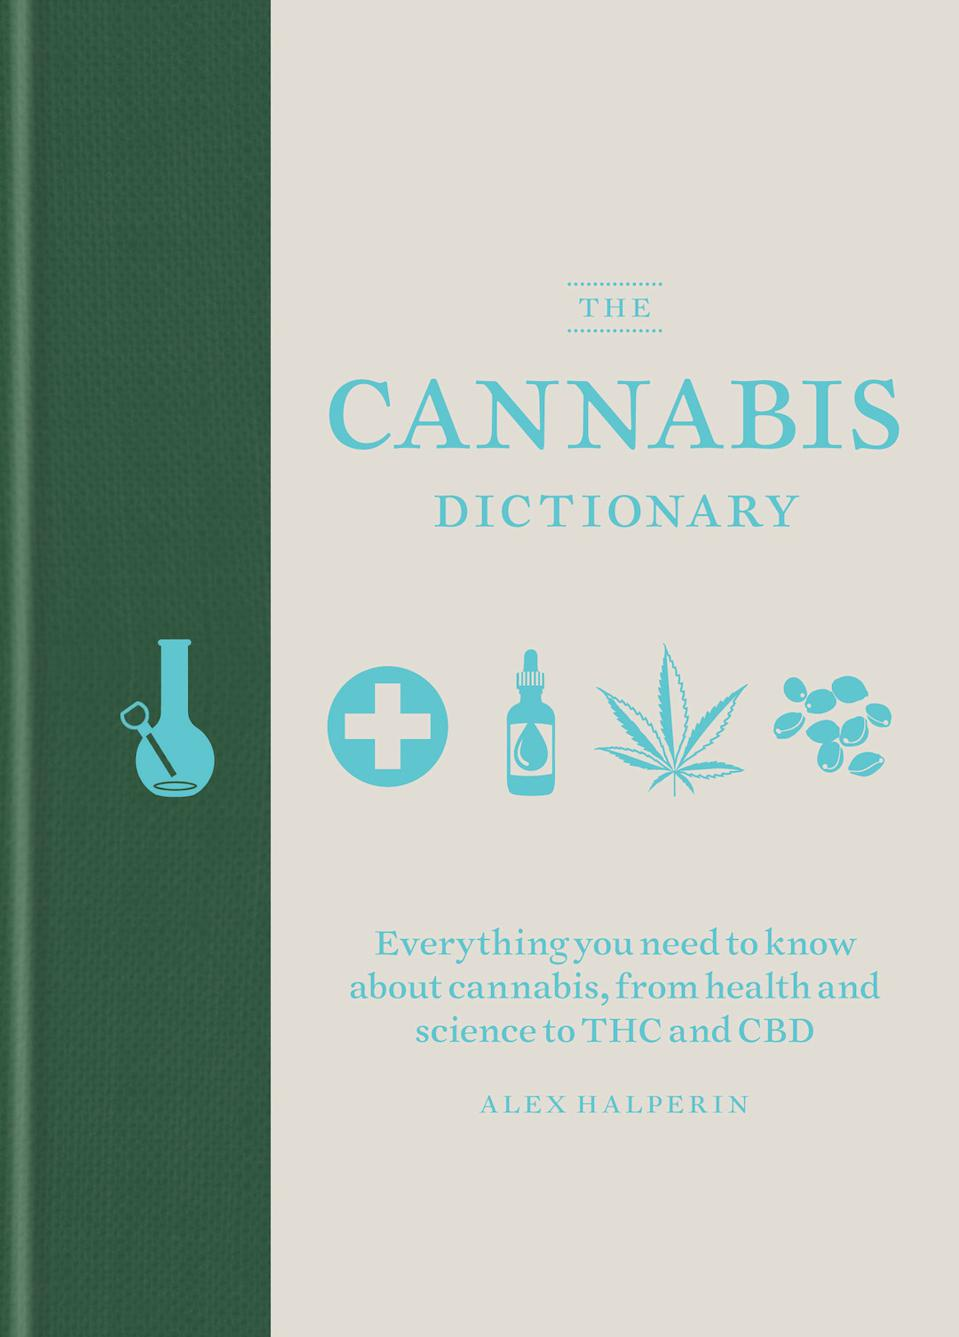 The Cannabis Dictionary, Alex Halperin, cannabis books, marijuana books